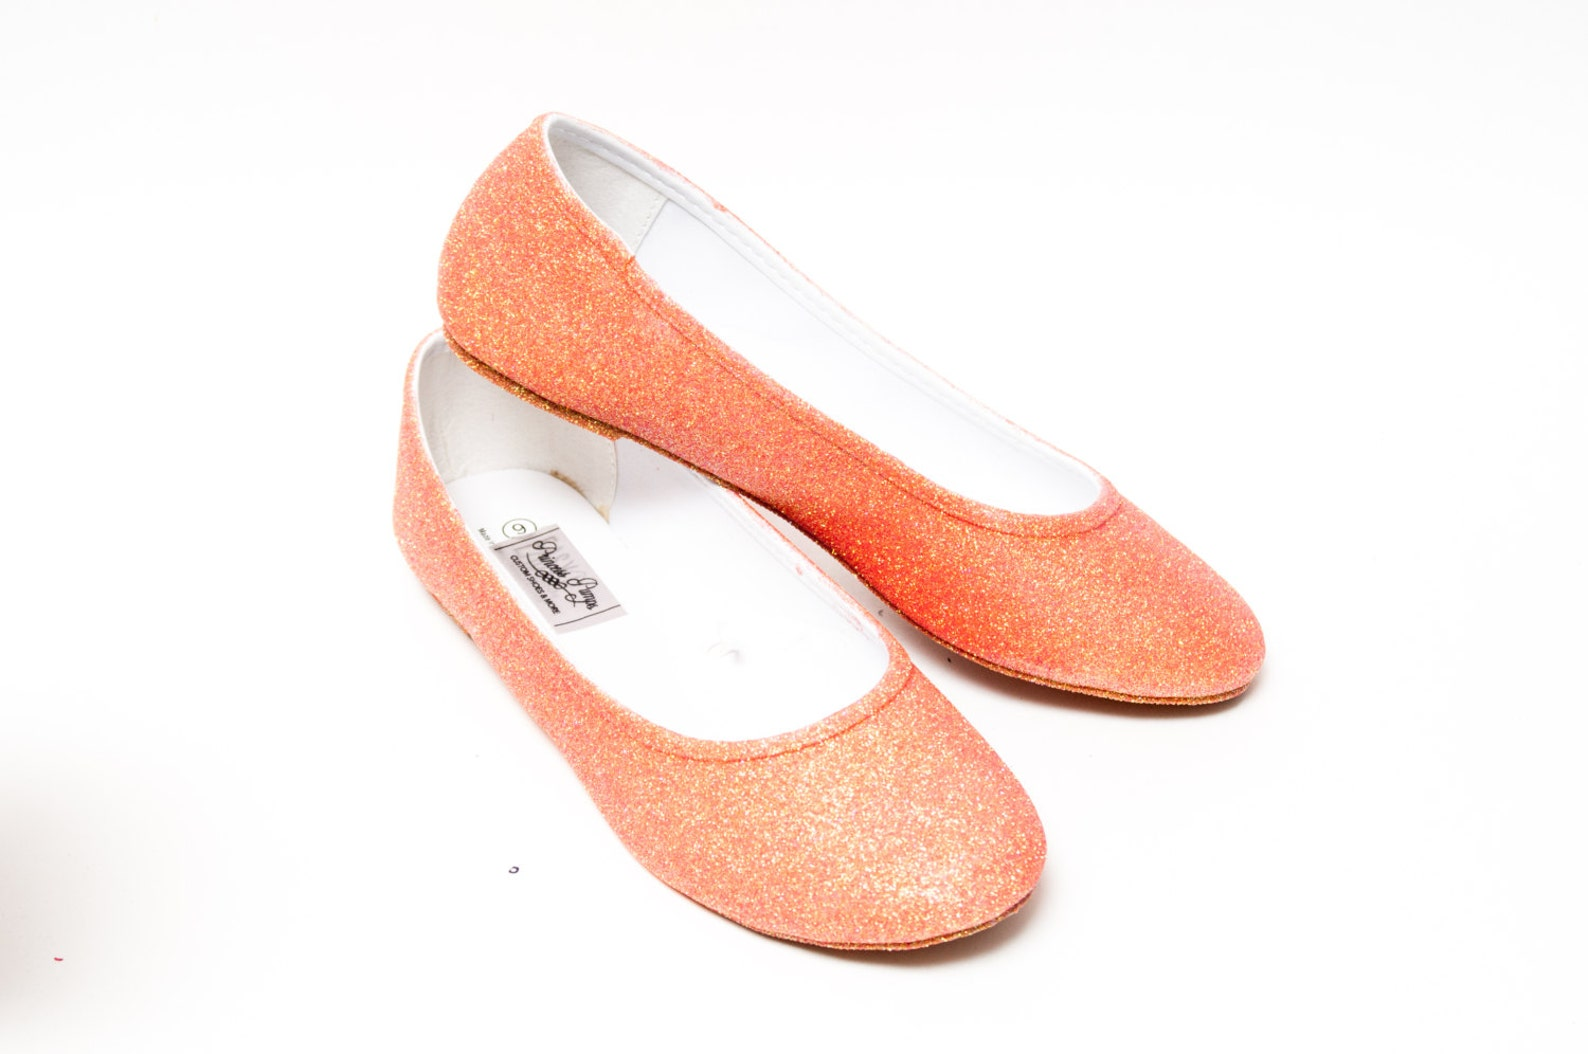 glitter | princess pumps melon orange ballet flat casual shoes